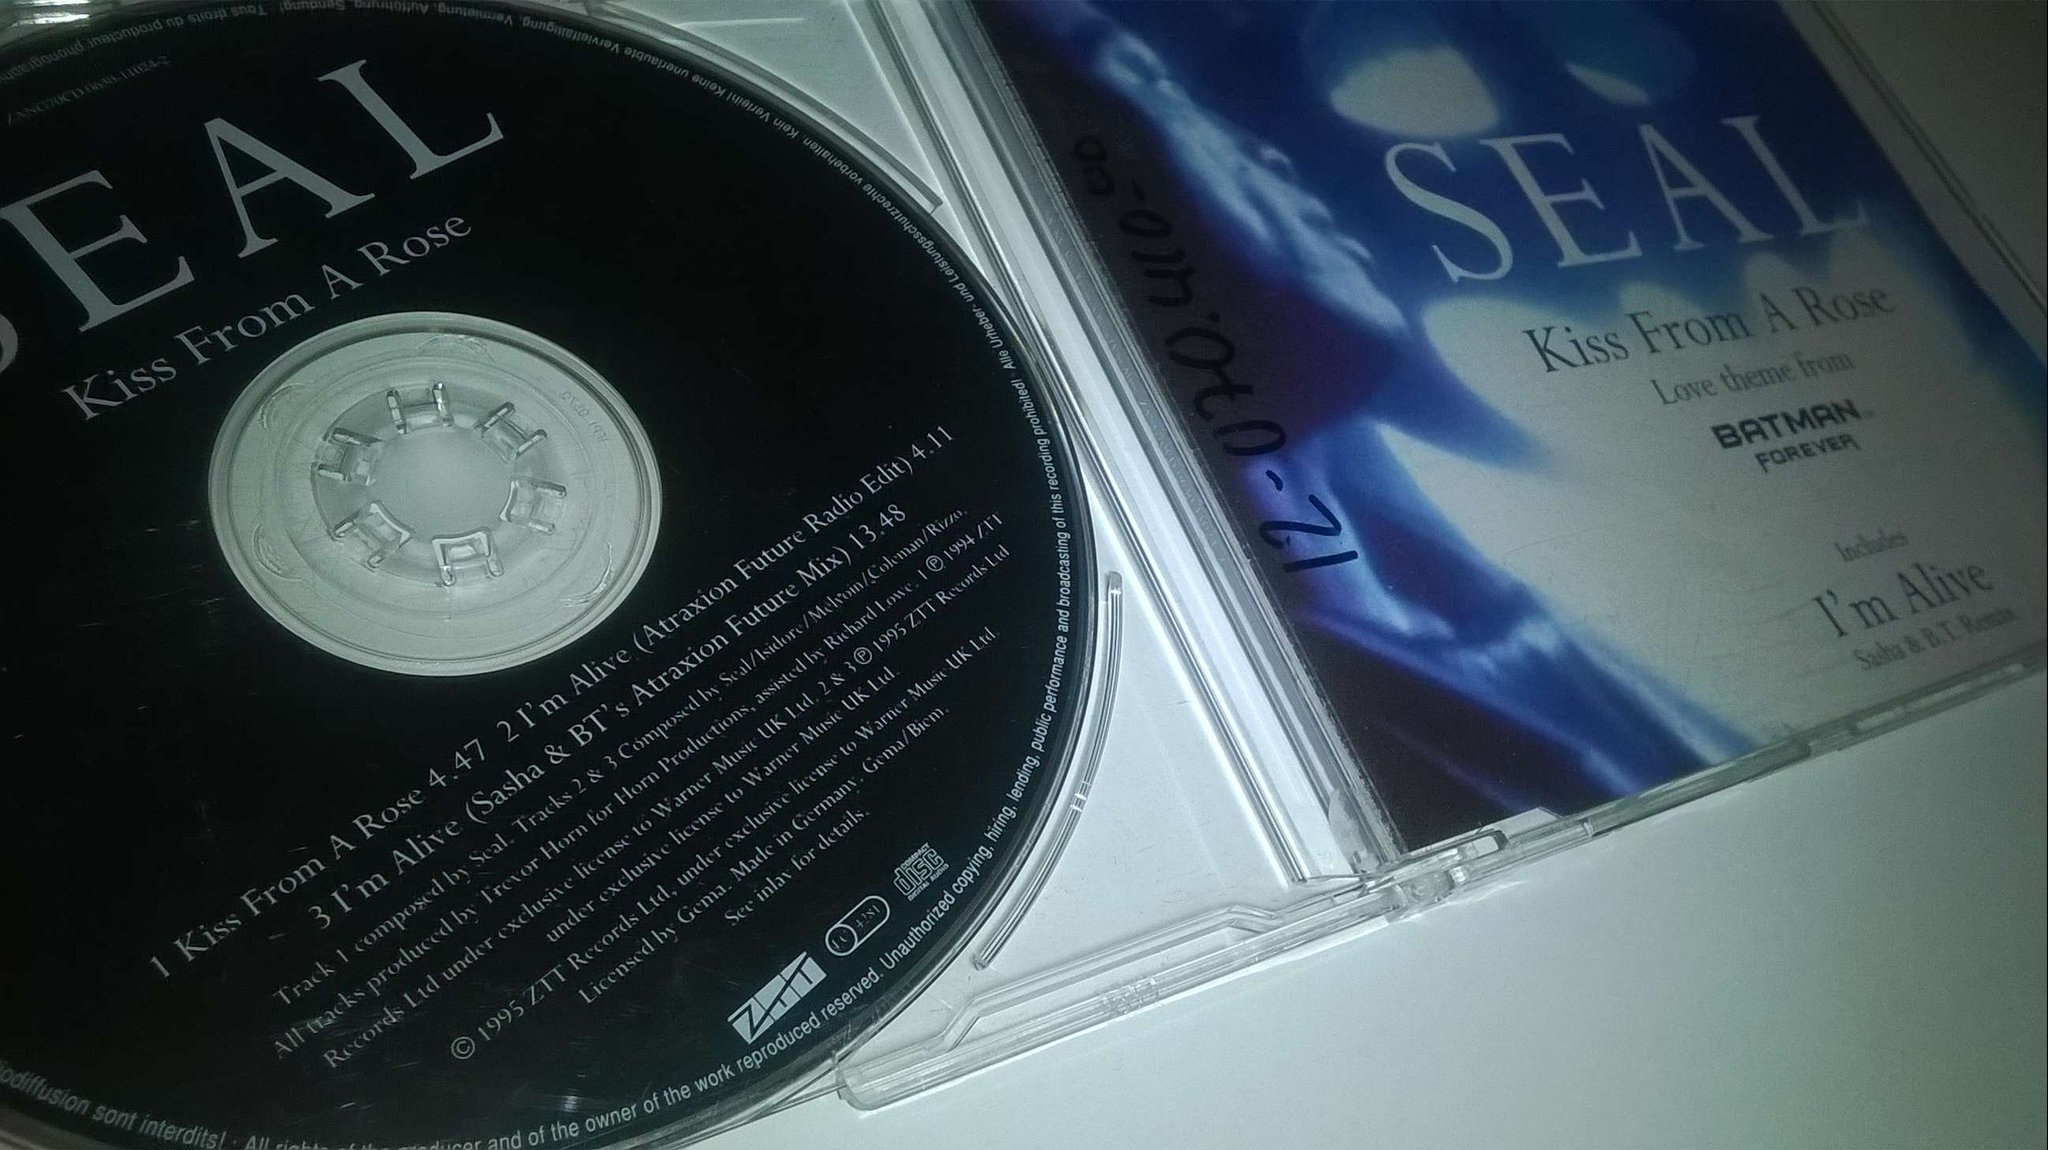 Seal ?- Kiss From A Rose / I'm Alive, CD, Single, rare!